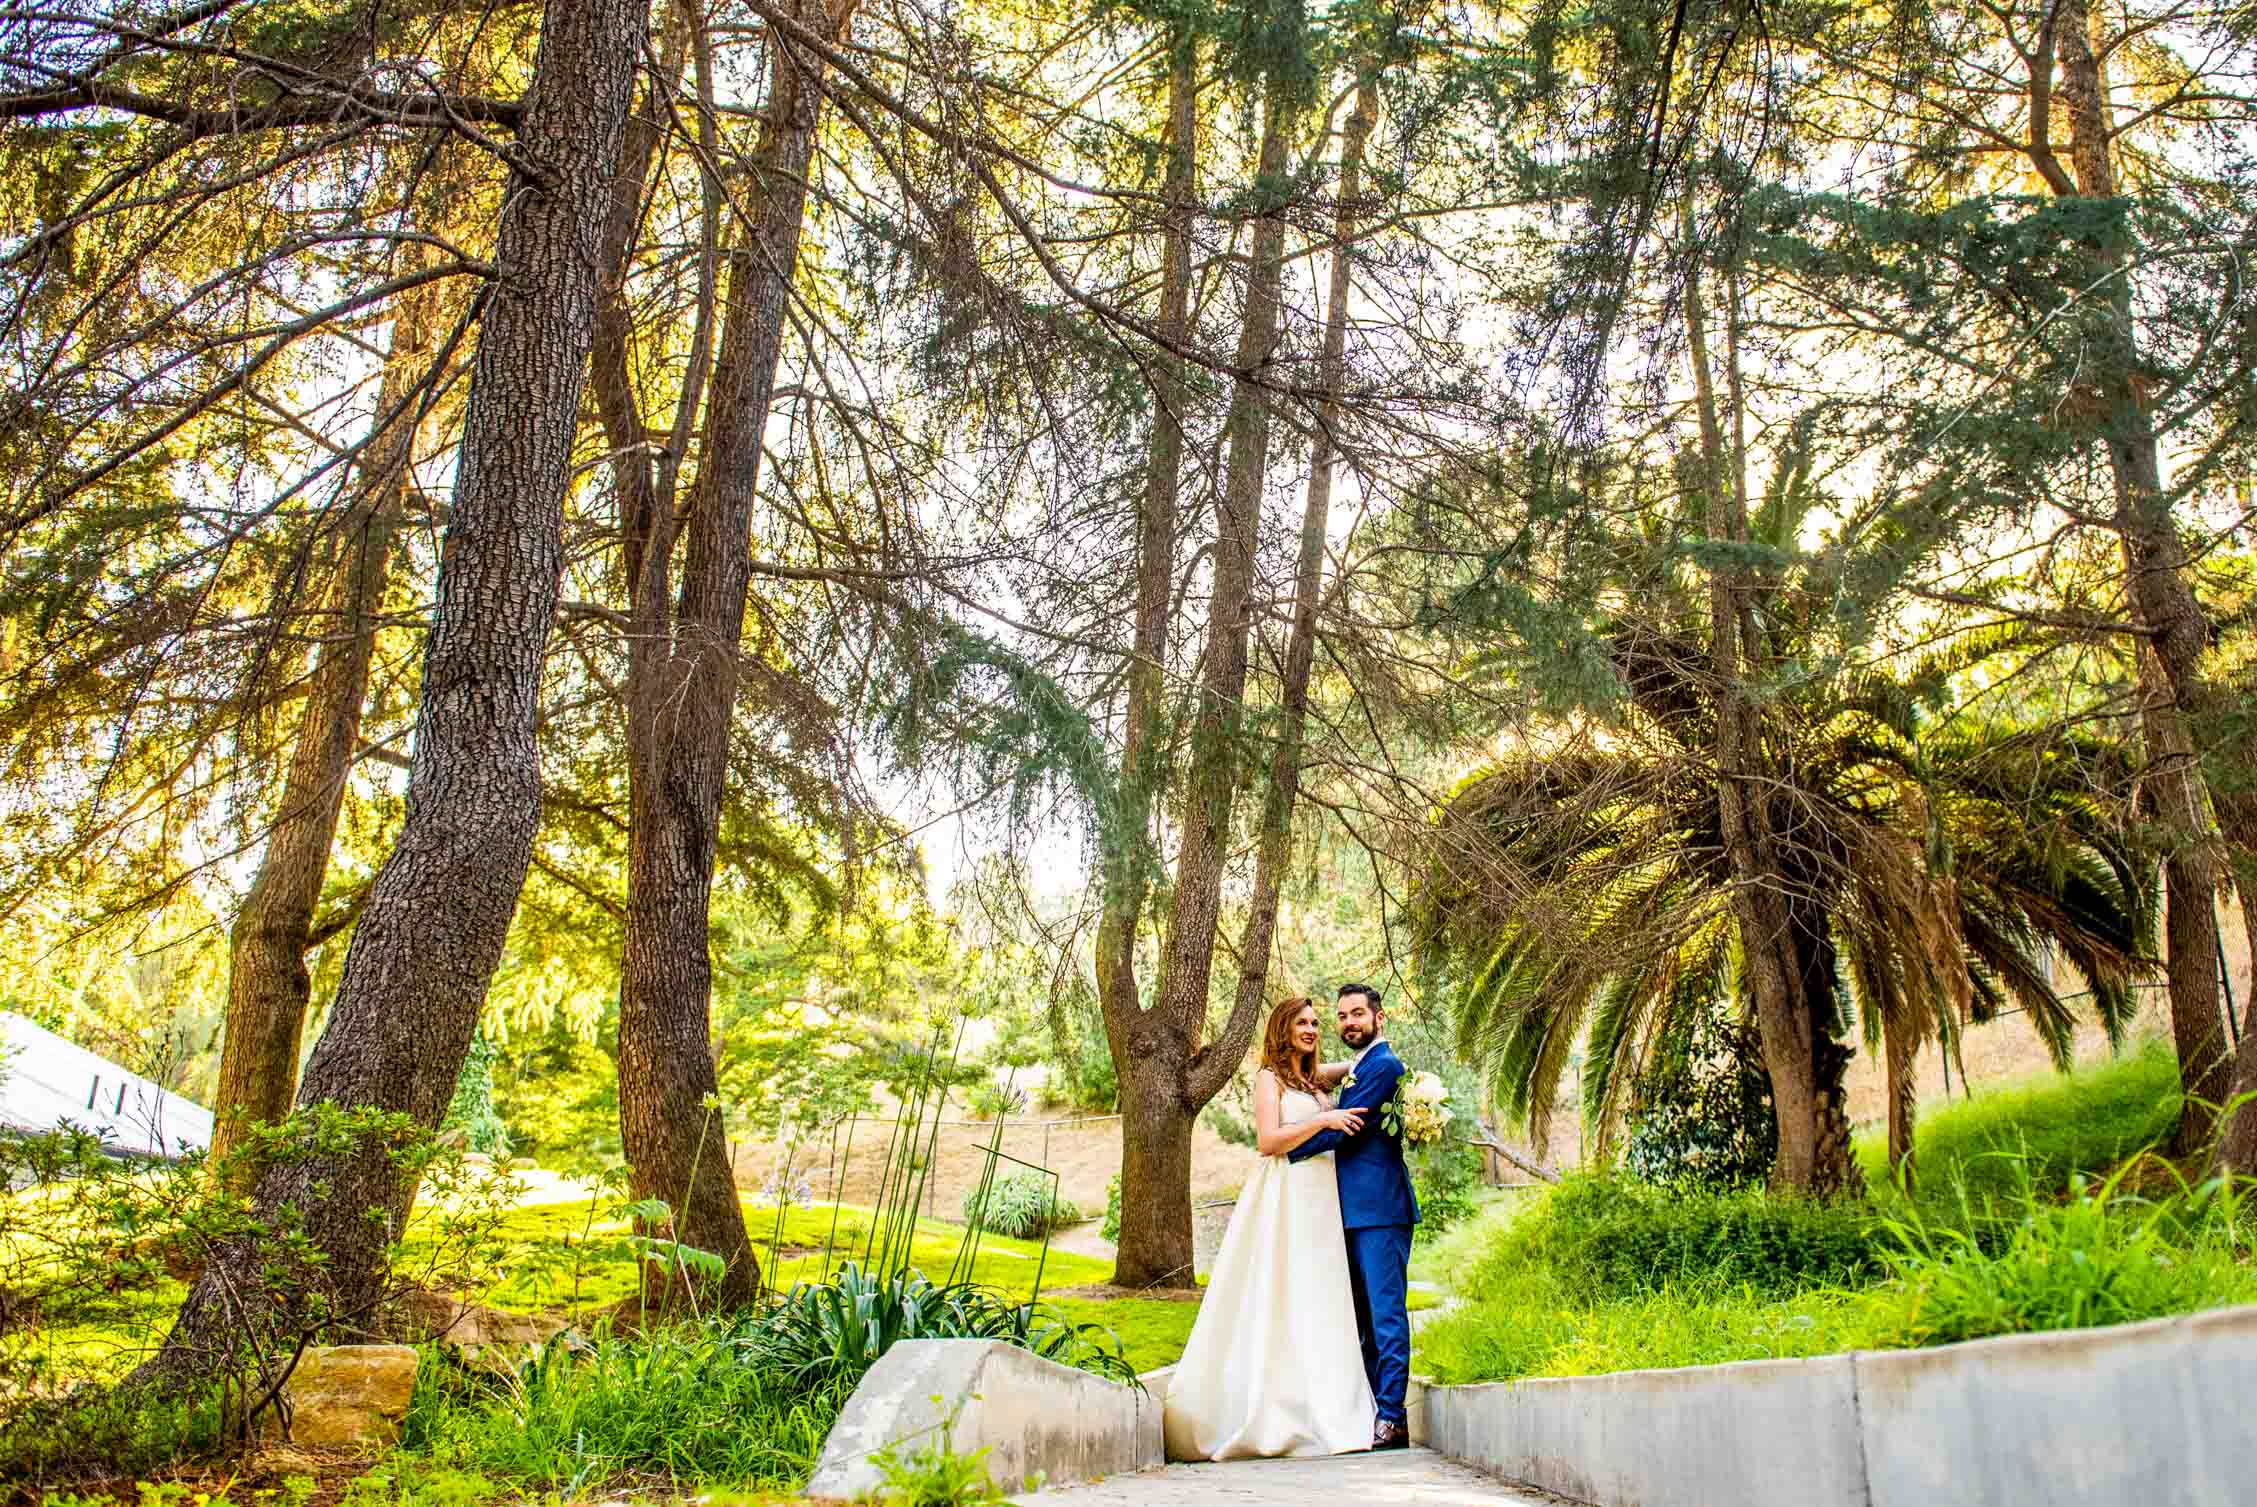 Wedding couple standing amongst lush palm trees